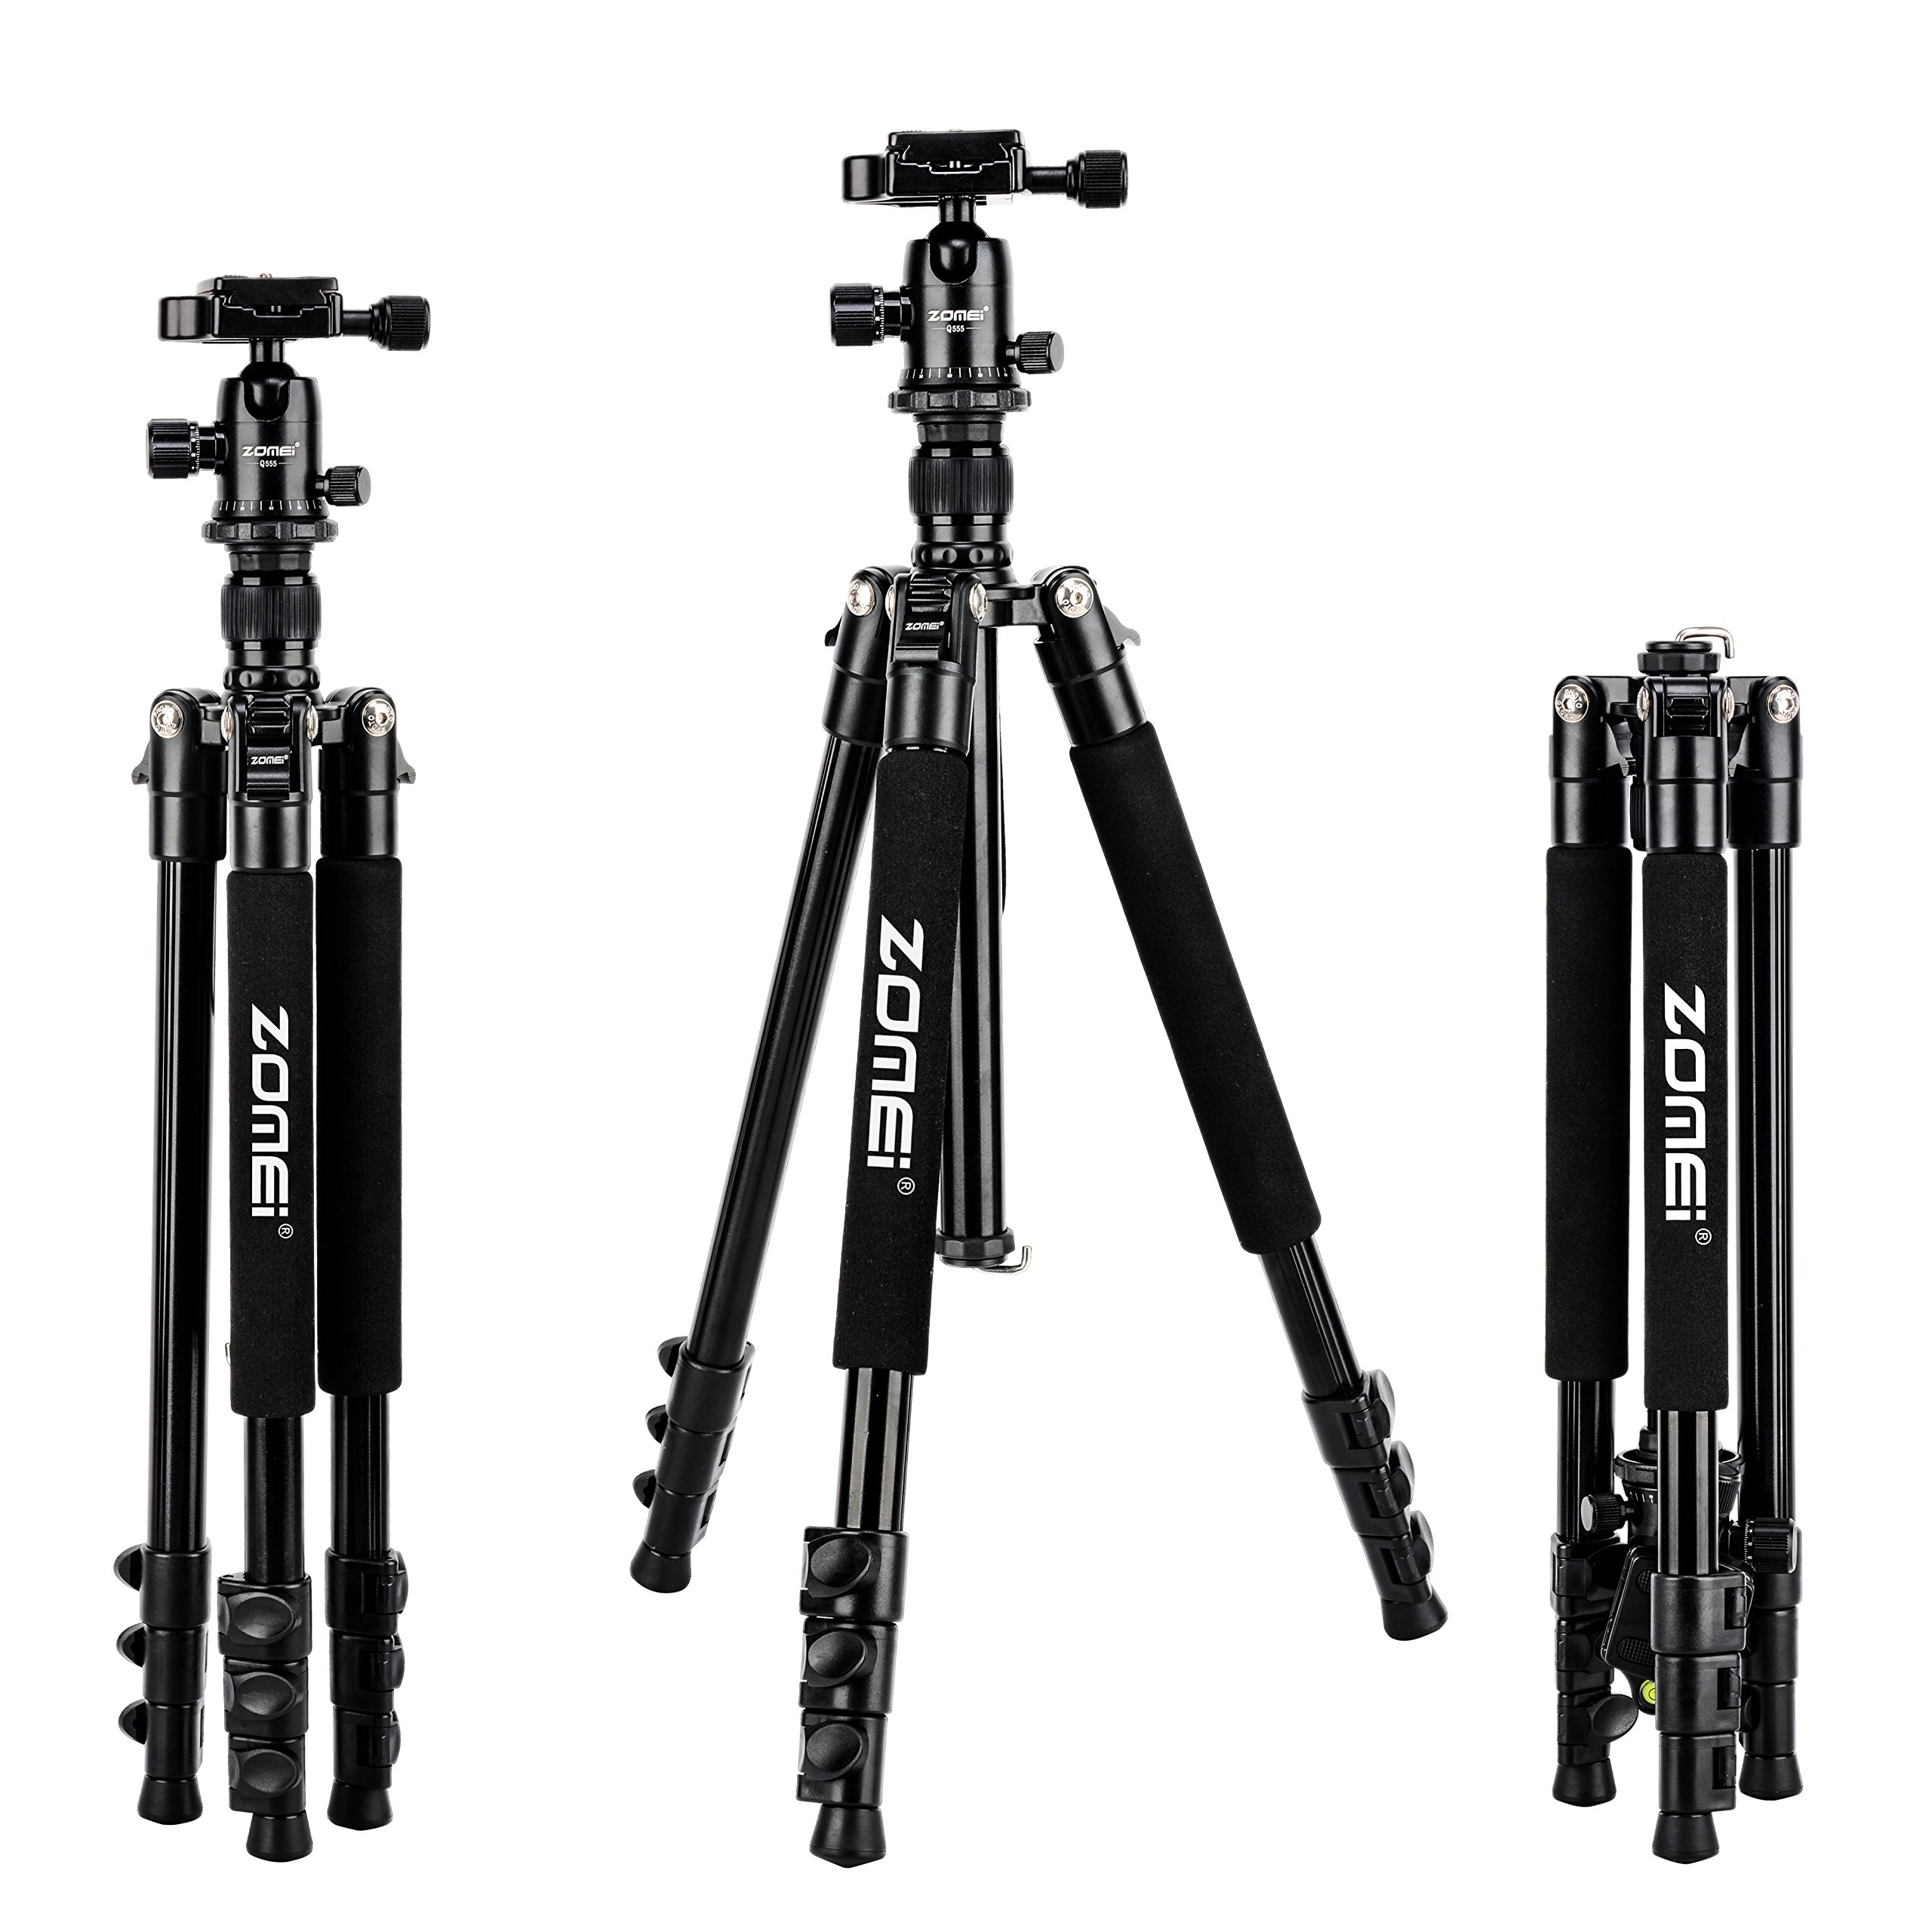 Zomei Q555 Lightweight Alluminum Alloy Camera Tripod with 360 Degree Ball Head + 1/4'' Quick Release Plate for Canon Nikon Sony Samsung Panasonic Olympus Fuji DSLR and Camcorders by ZoMei